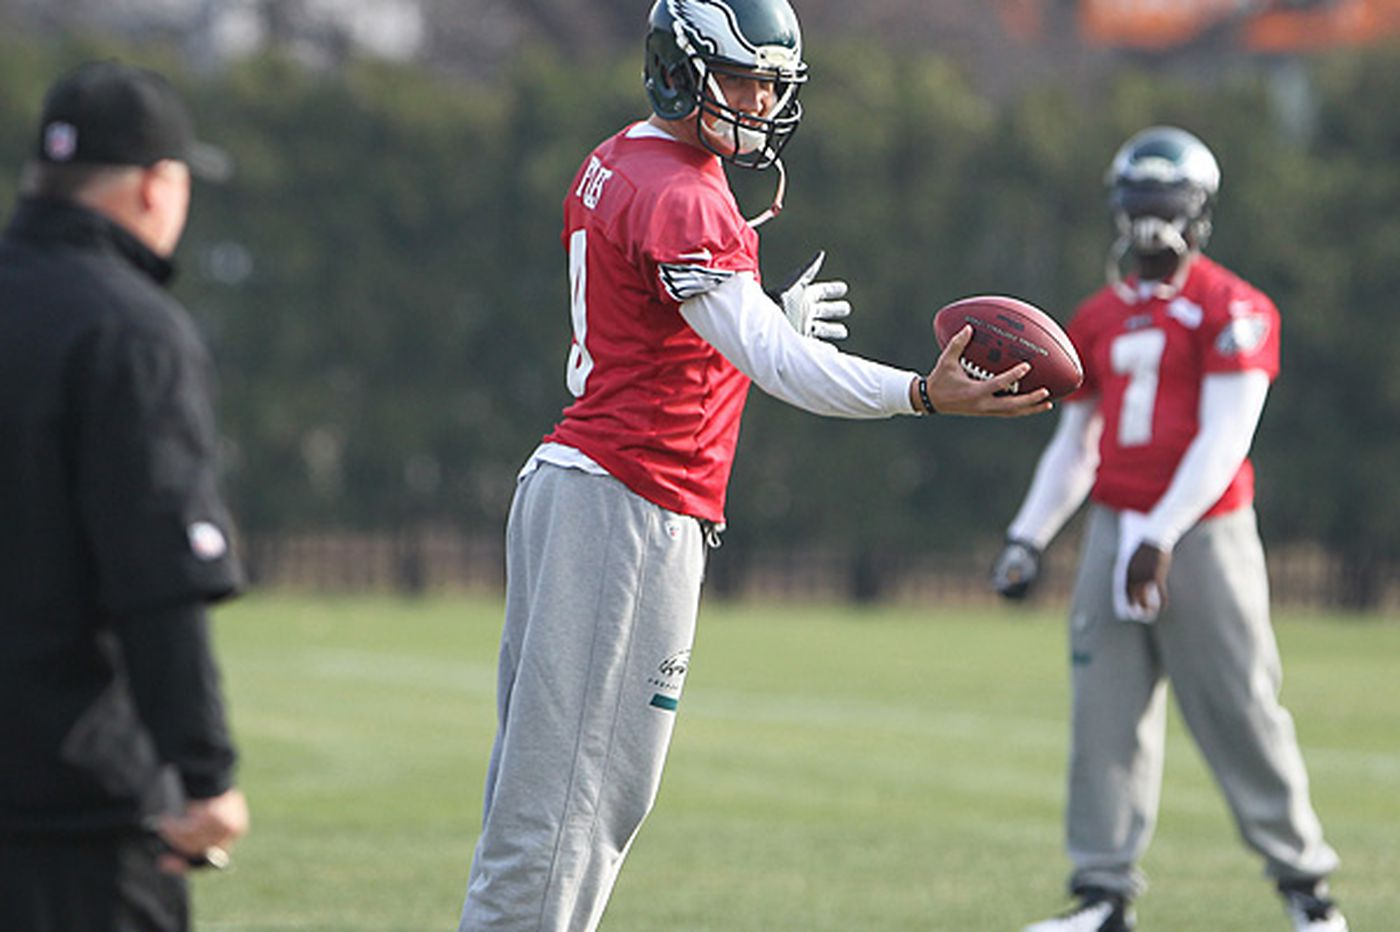 Eagles Notes: Foles is just happy to have Kelly's backing